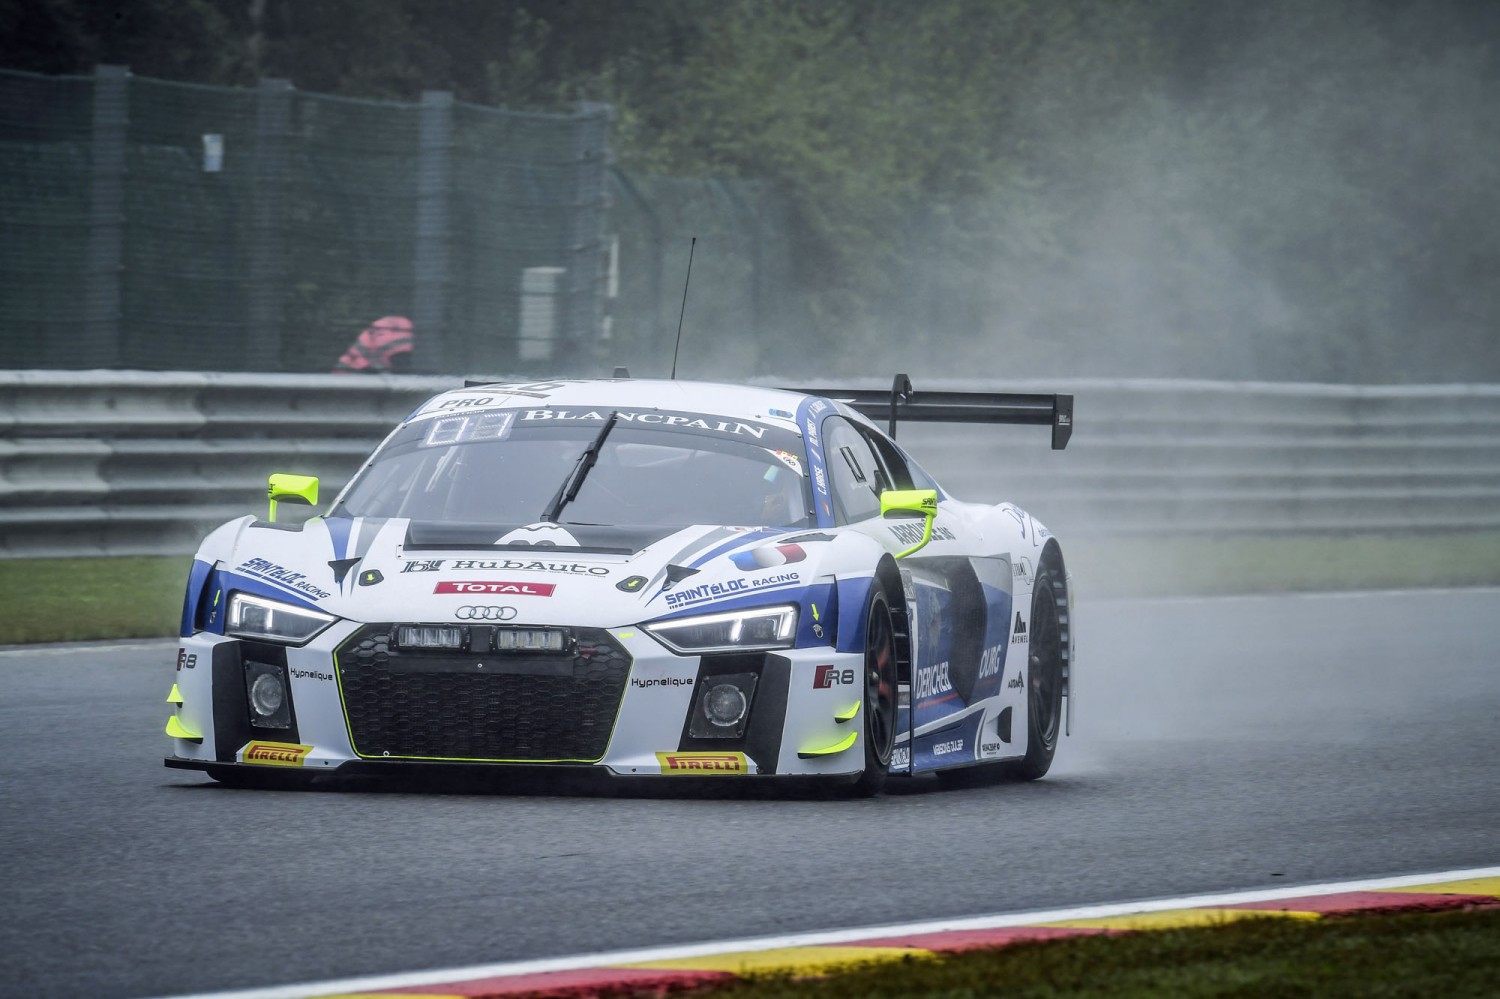 Saintéloc Racing Audi on top in mixed conditions